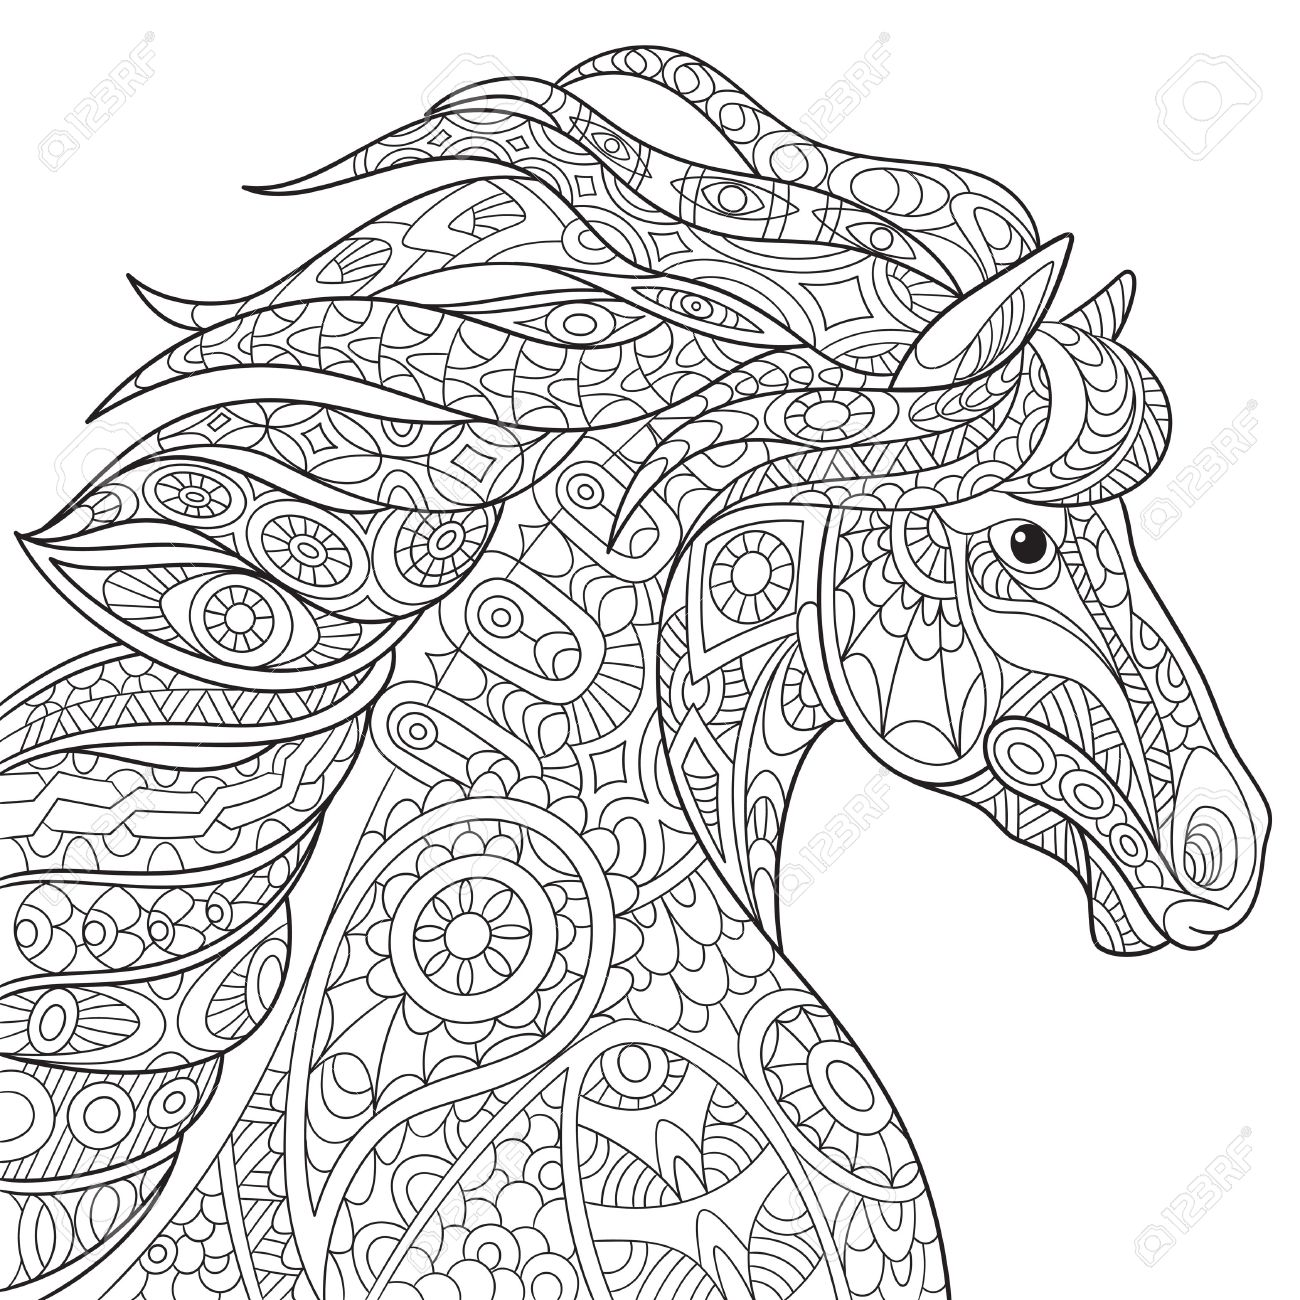 Cartoon Horse Mustang Isolated On White Background Hand Drawn Sketch For Adult